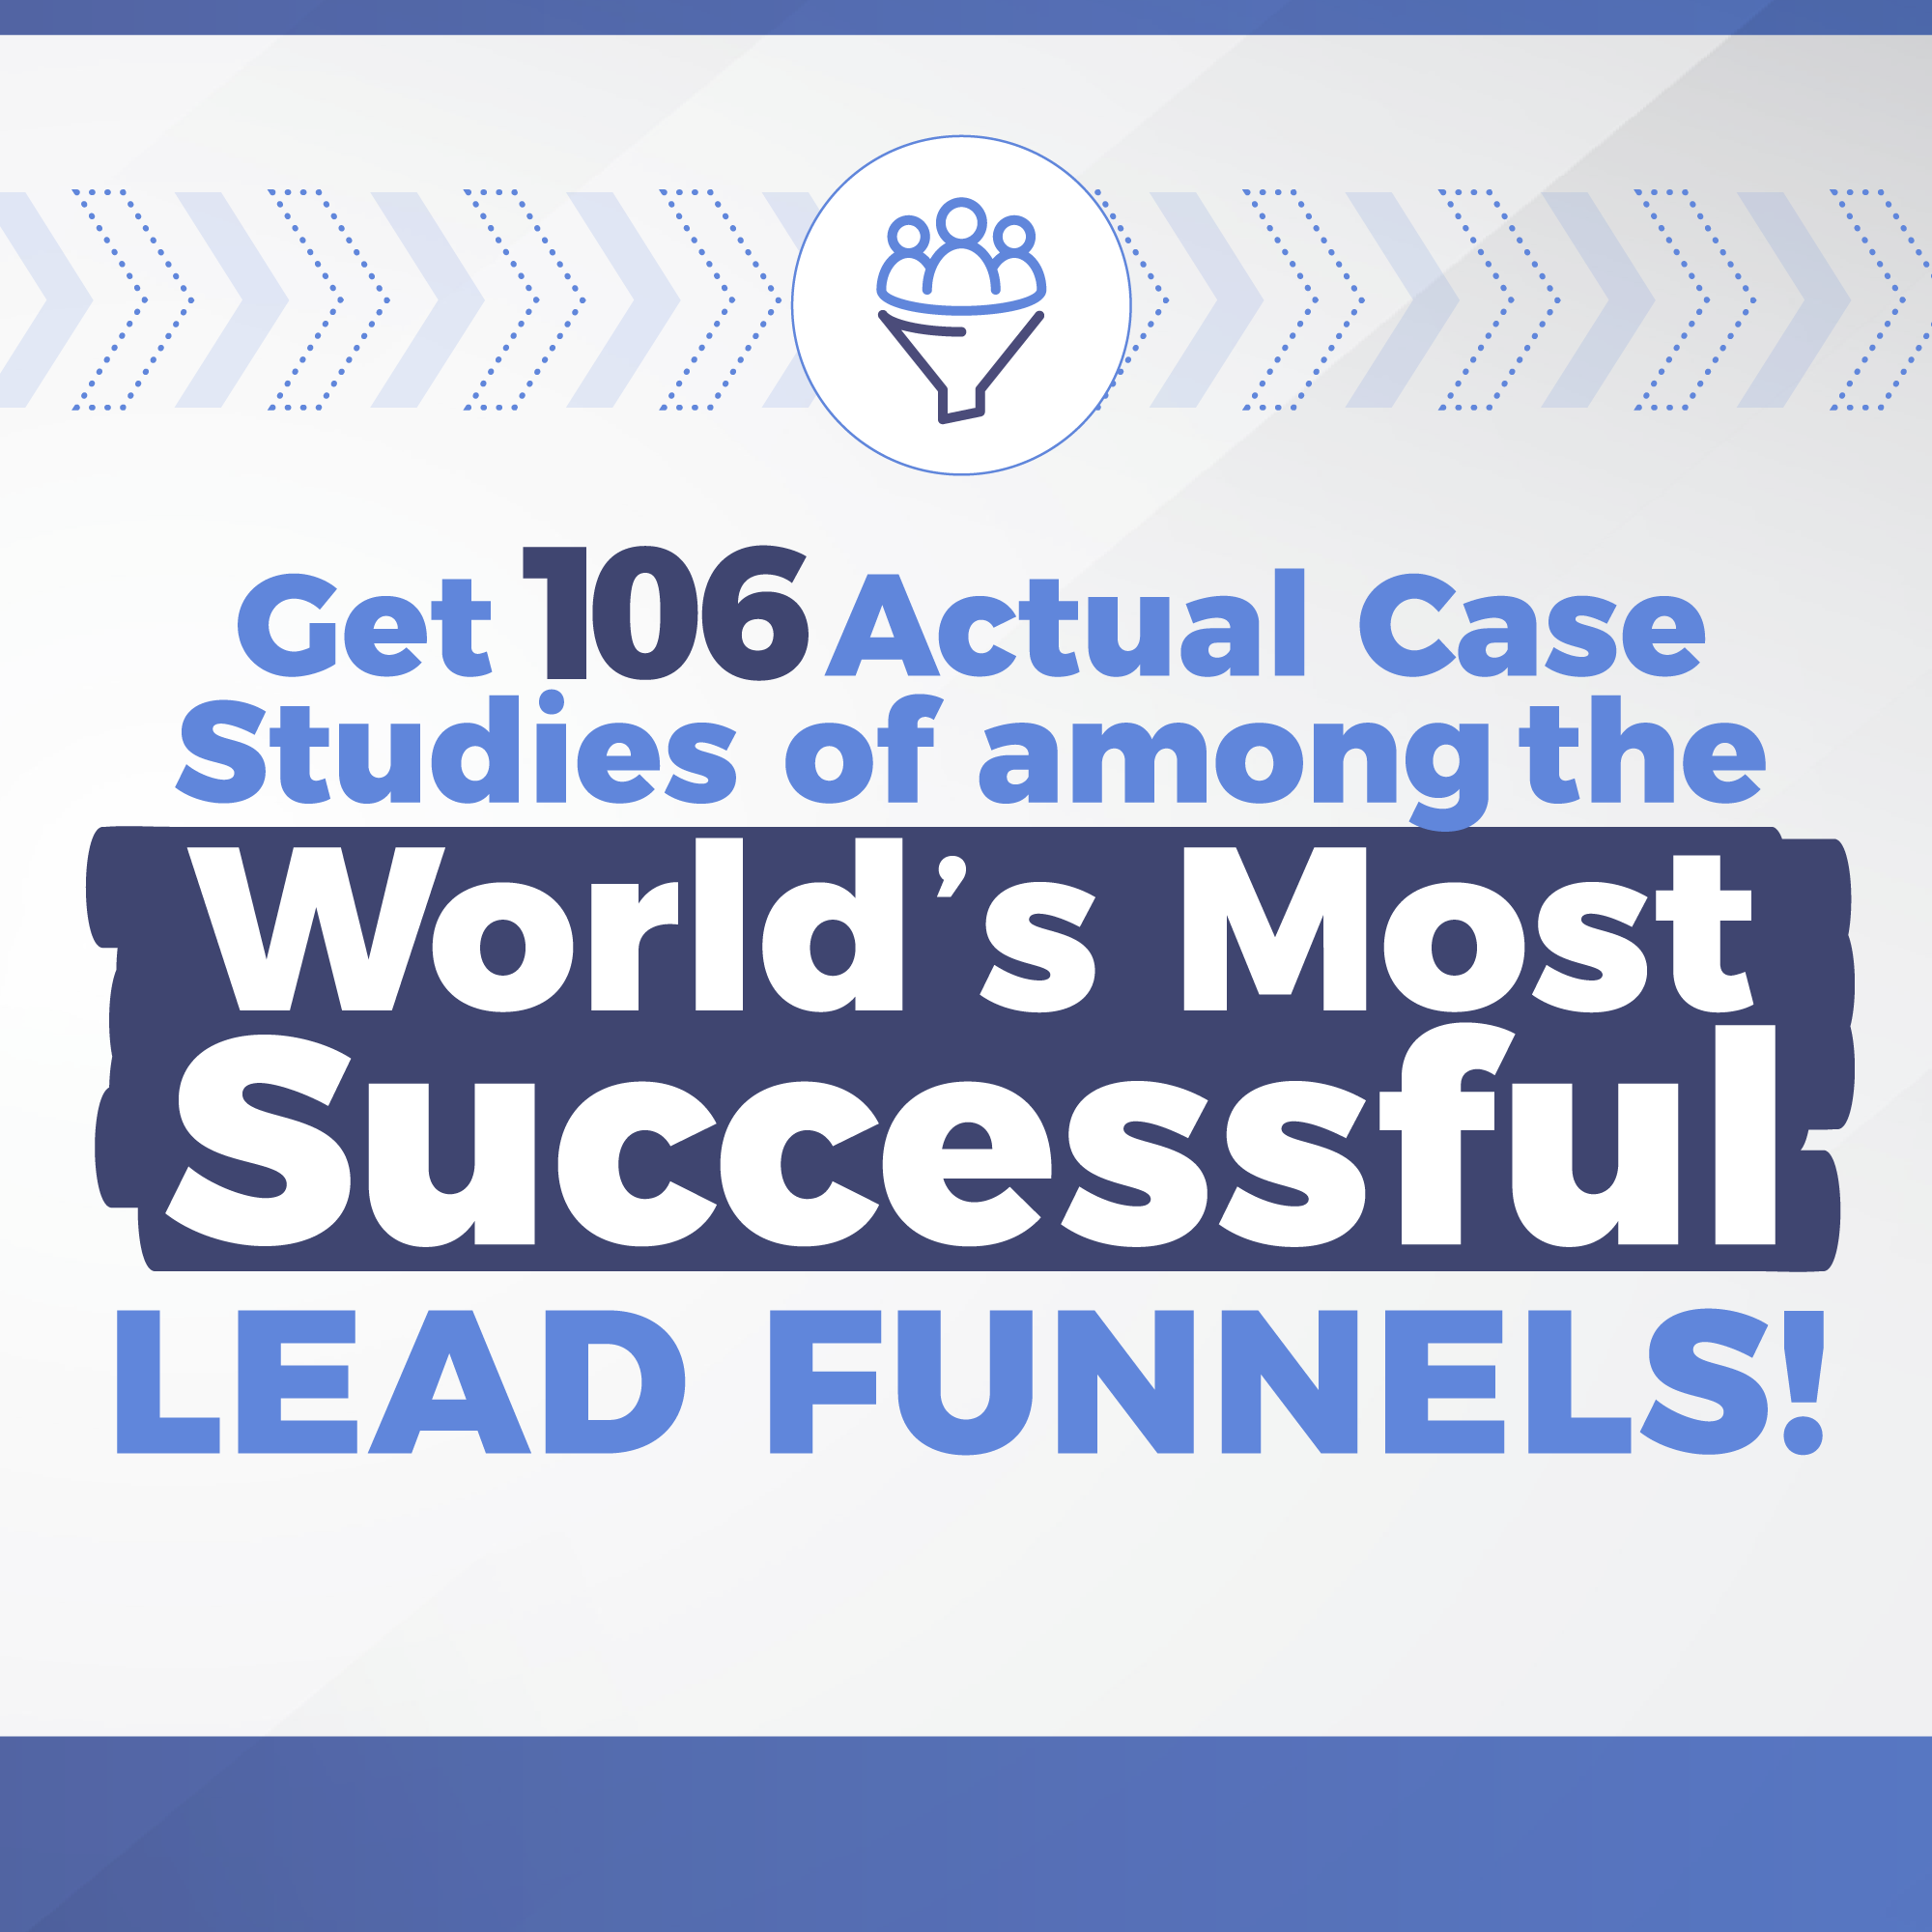 Lead Funnel Swipe File